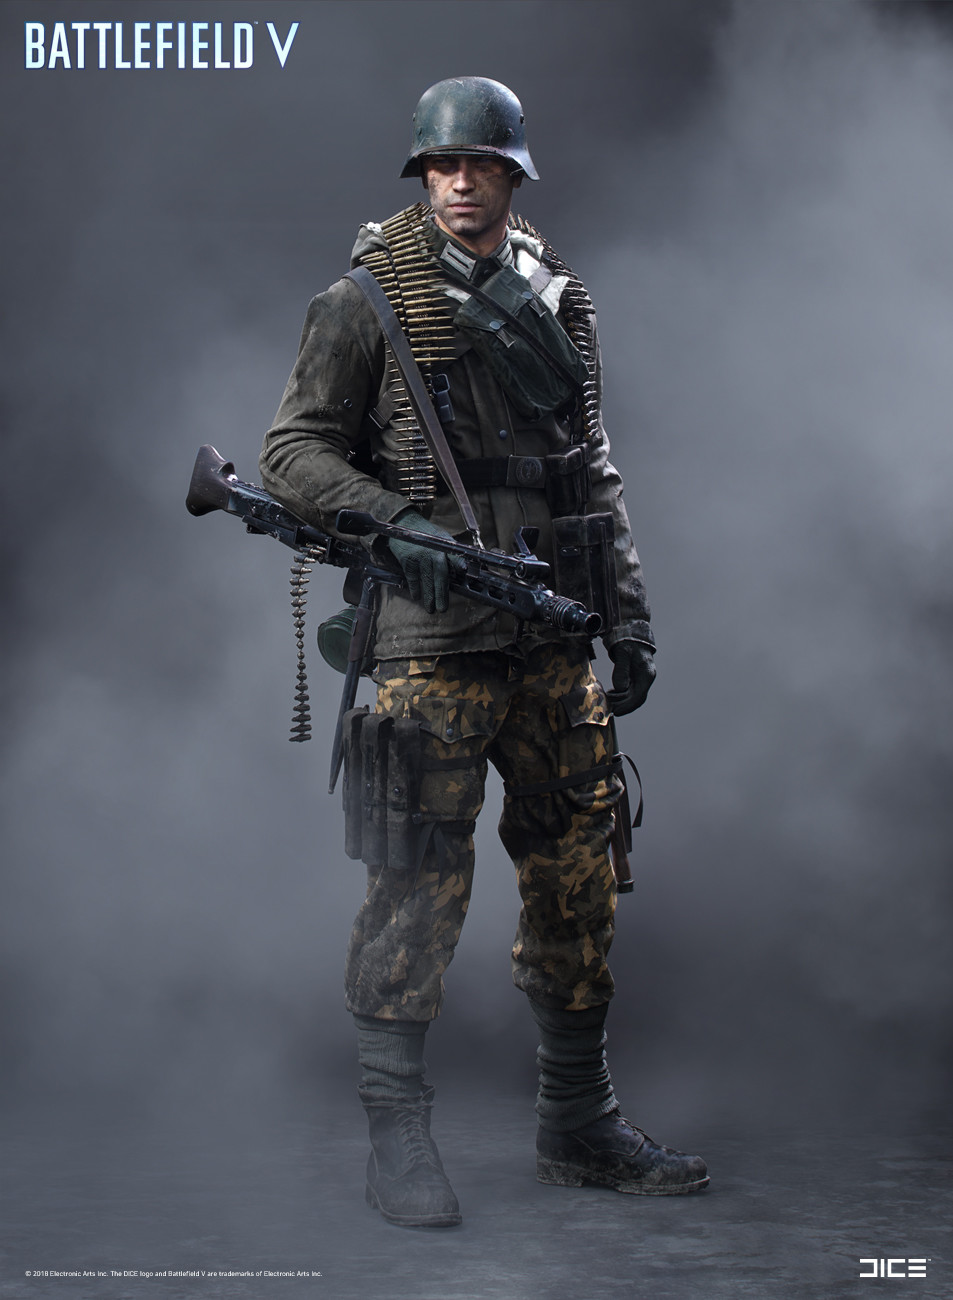 """Battlefield V"" - Axis Support, MP Soldier - Concept Art"